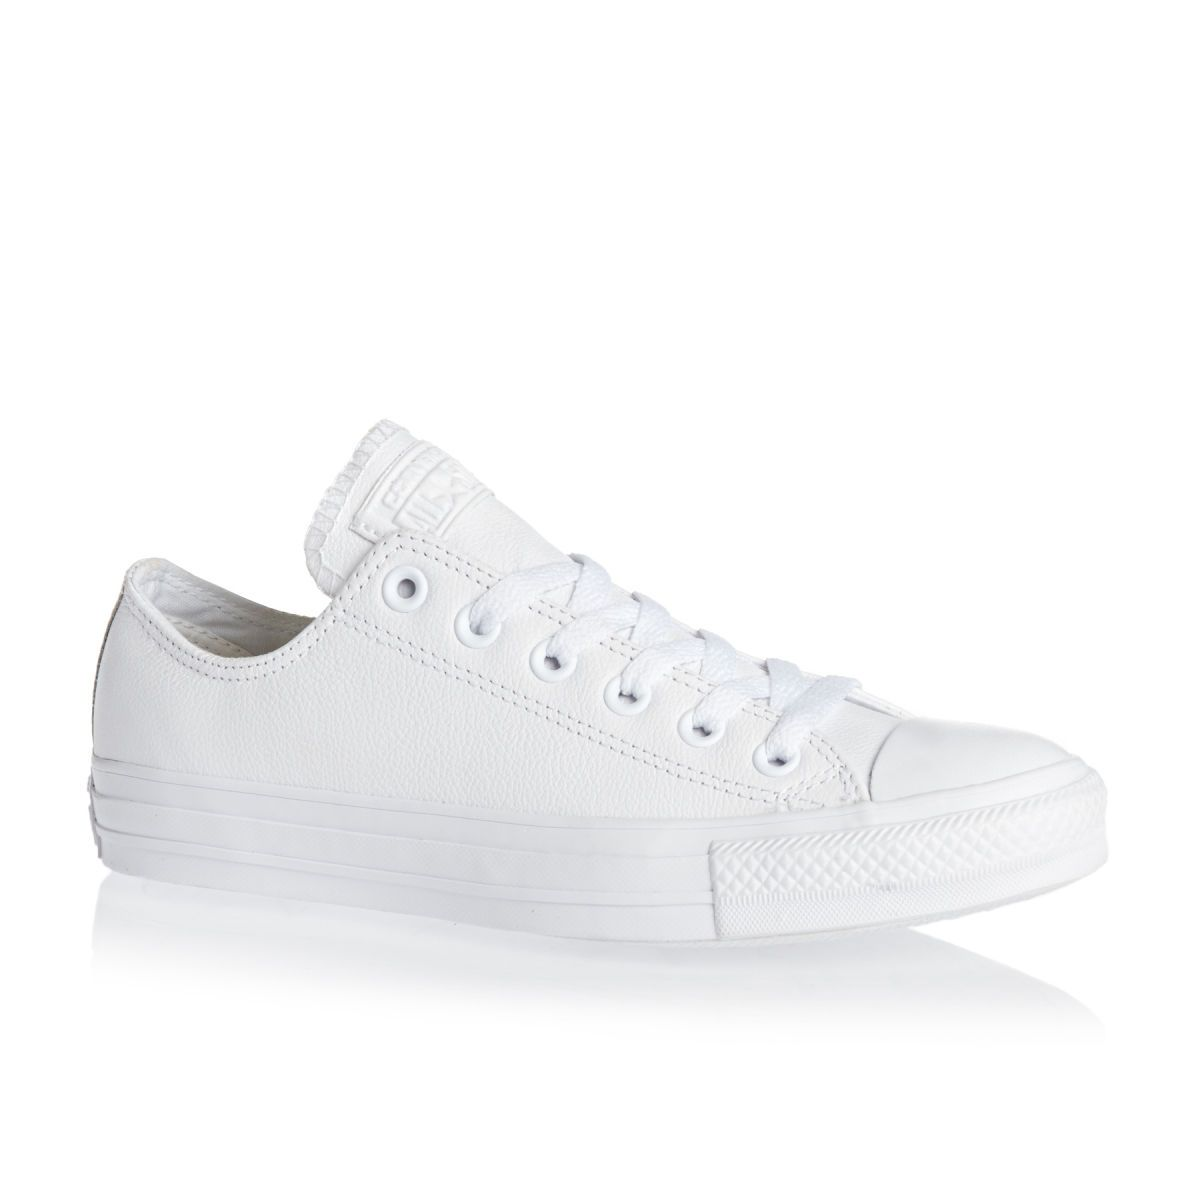 Converse Shoes - Converse Chuck Taylor All Star Leather Ox Shoes - White edc8235ca